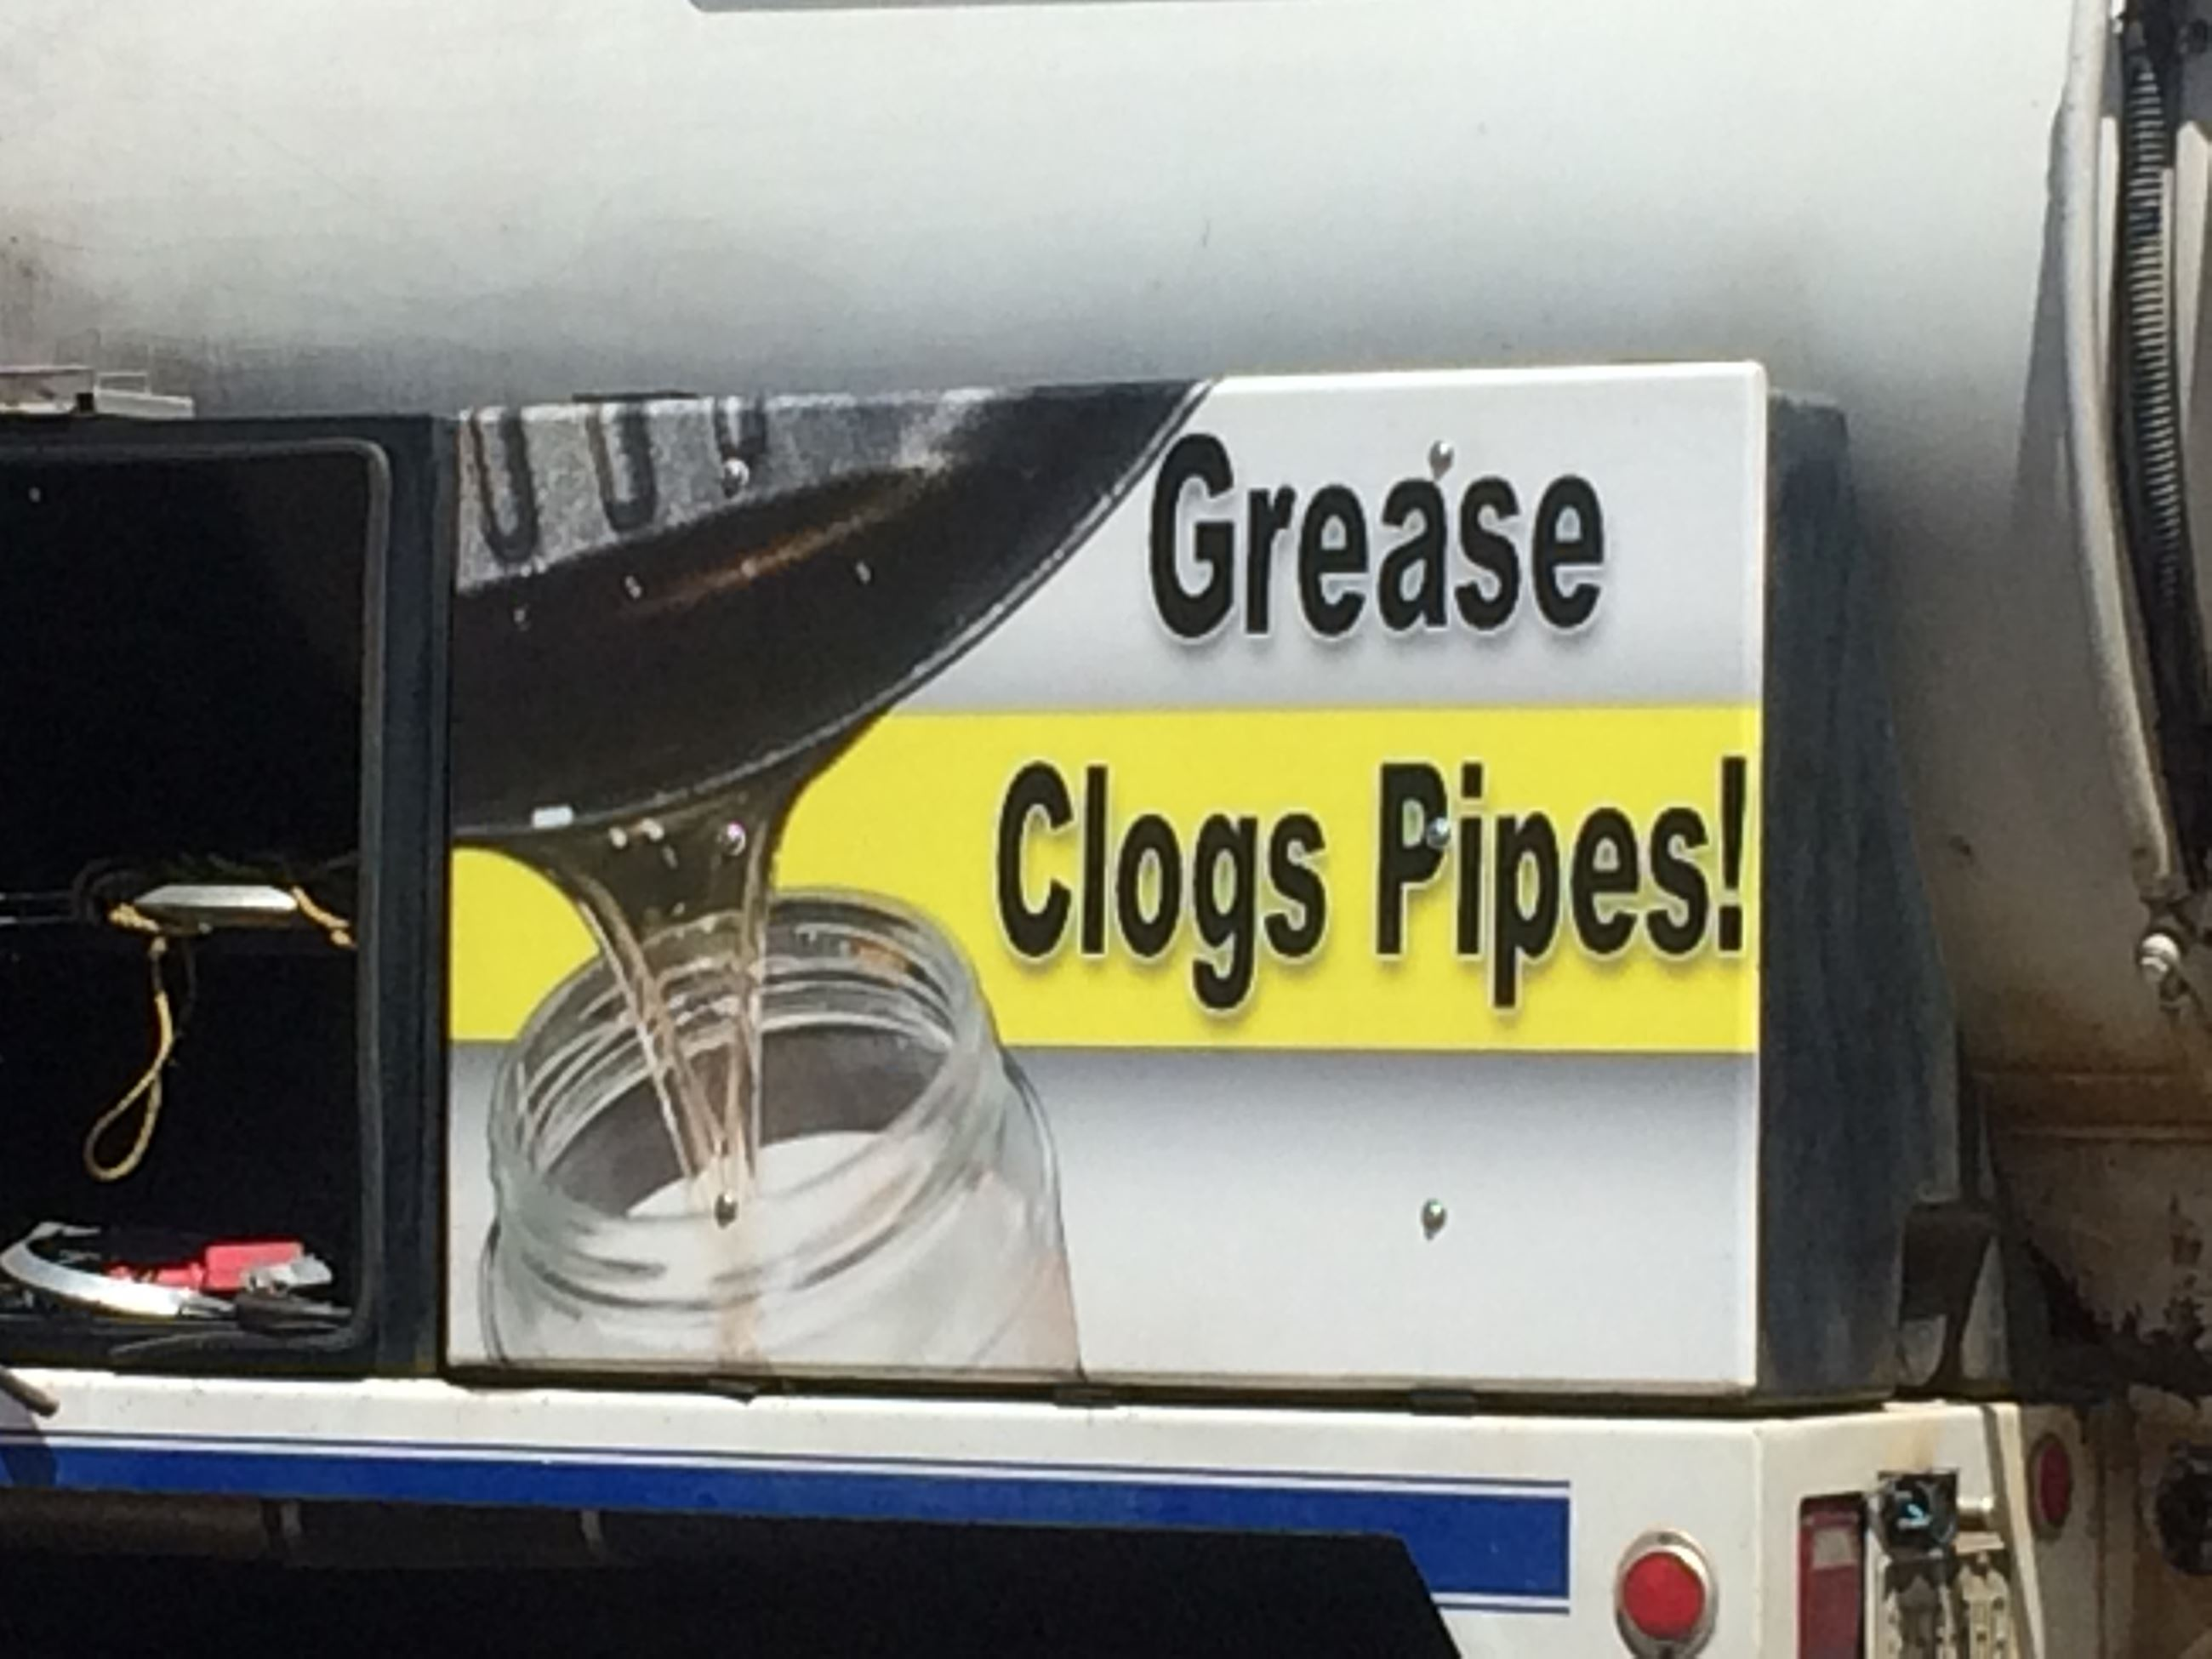 Grease Clogs Pipes! Put it in the Trash!